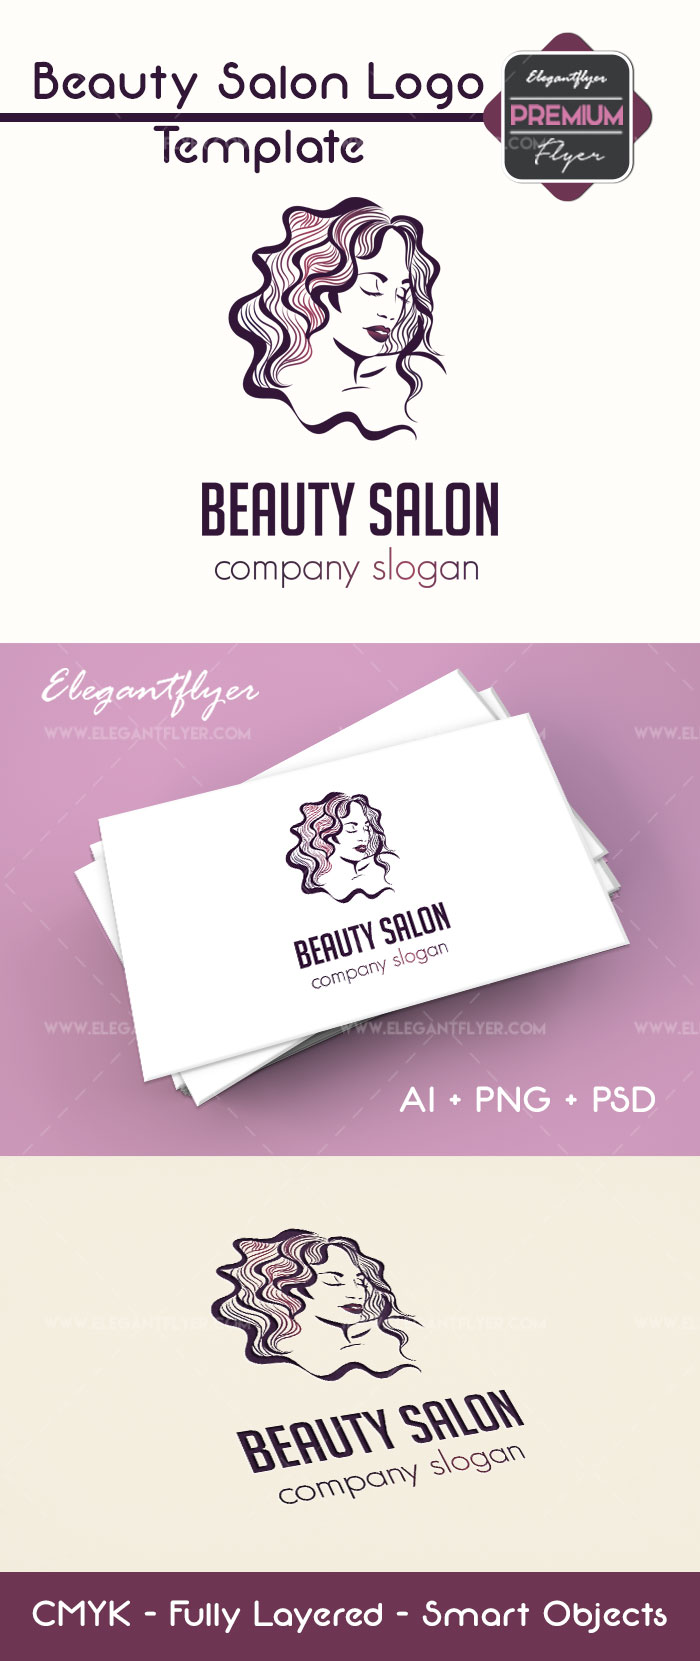 Logos for Beauty Salons